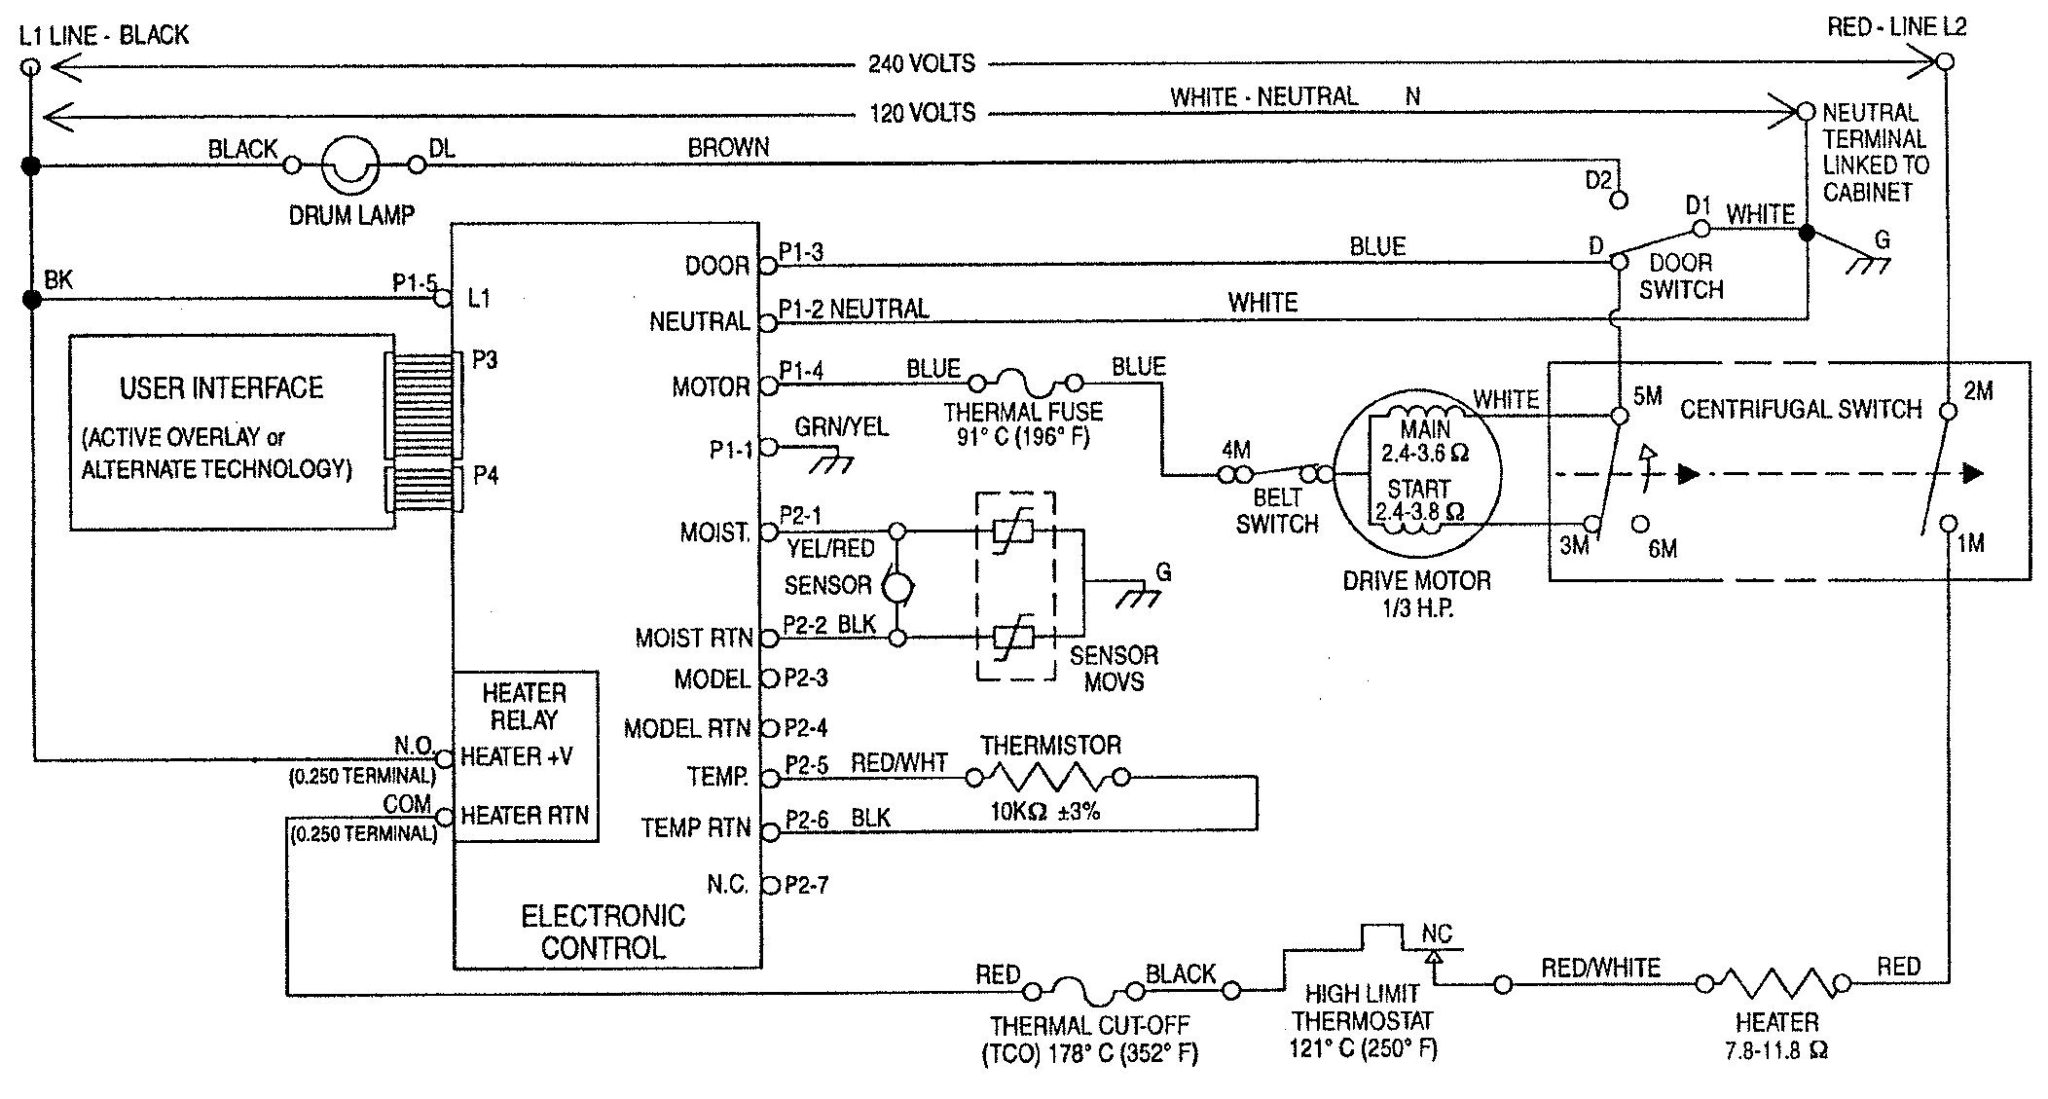 Maytag Double Oven Wiring Diagram - All Diagram Schematics on